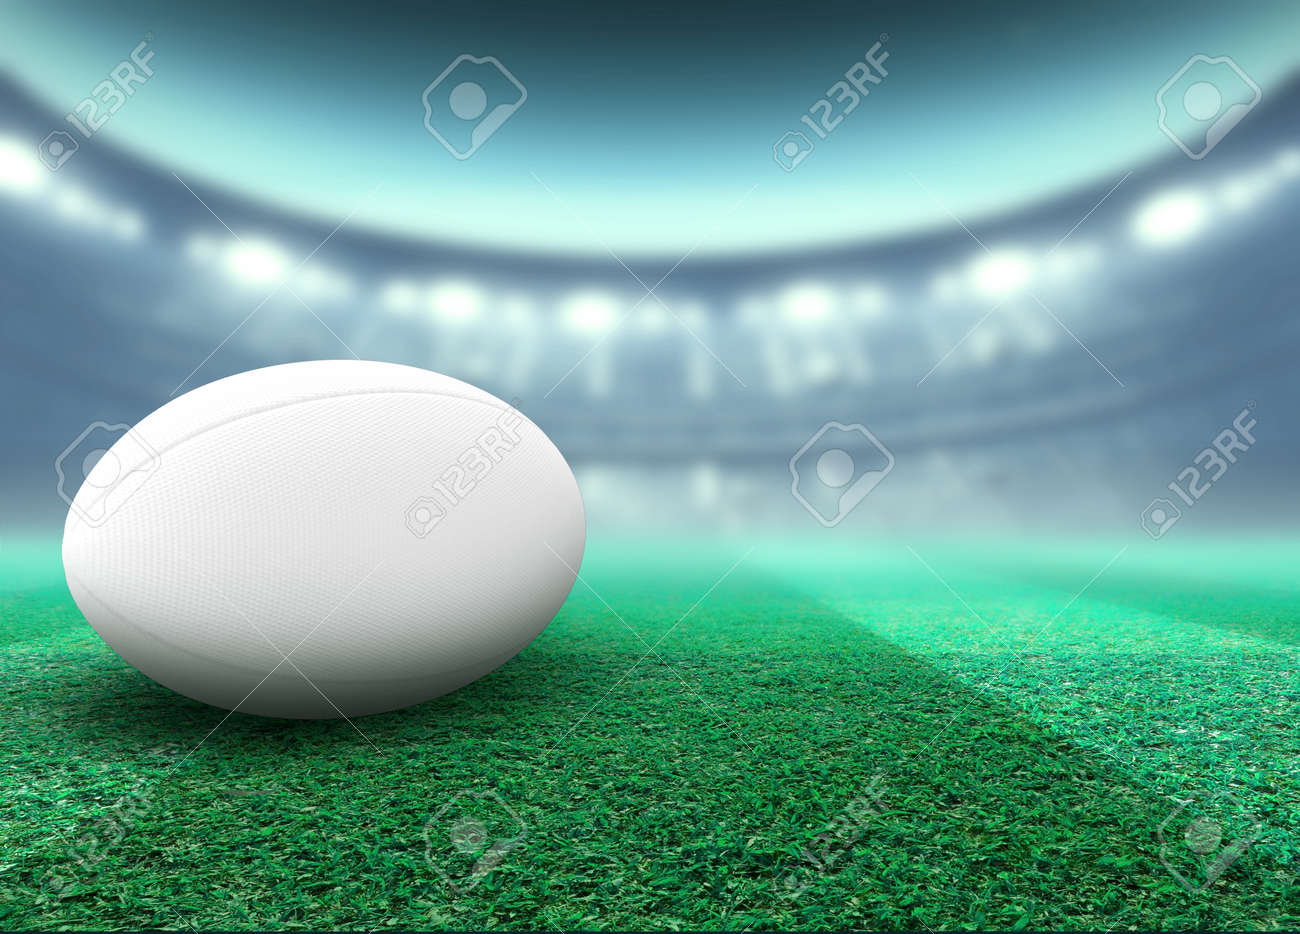 A reguar white rugby ball resting on a stadium grass pitch at night under illuminated floodlights - 3D render - 125812432